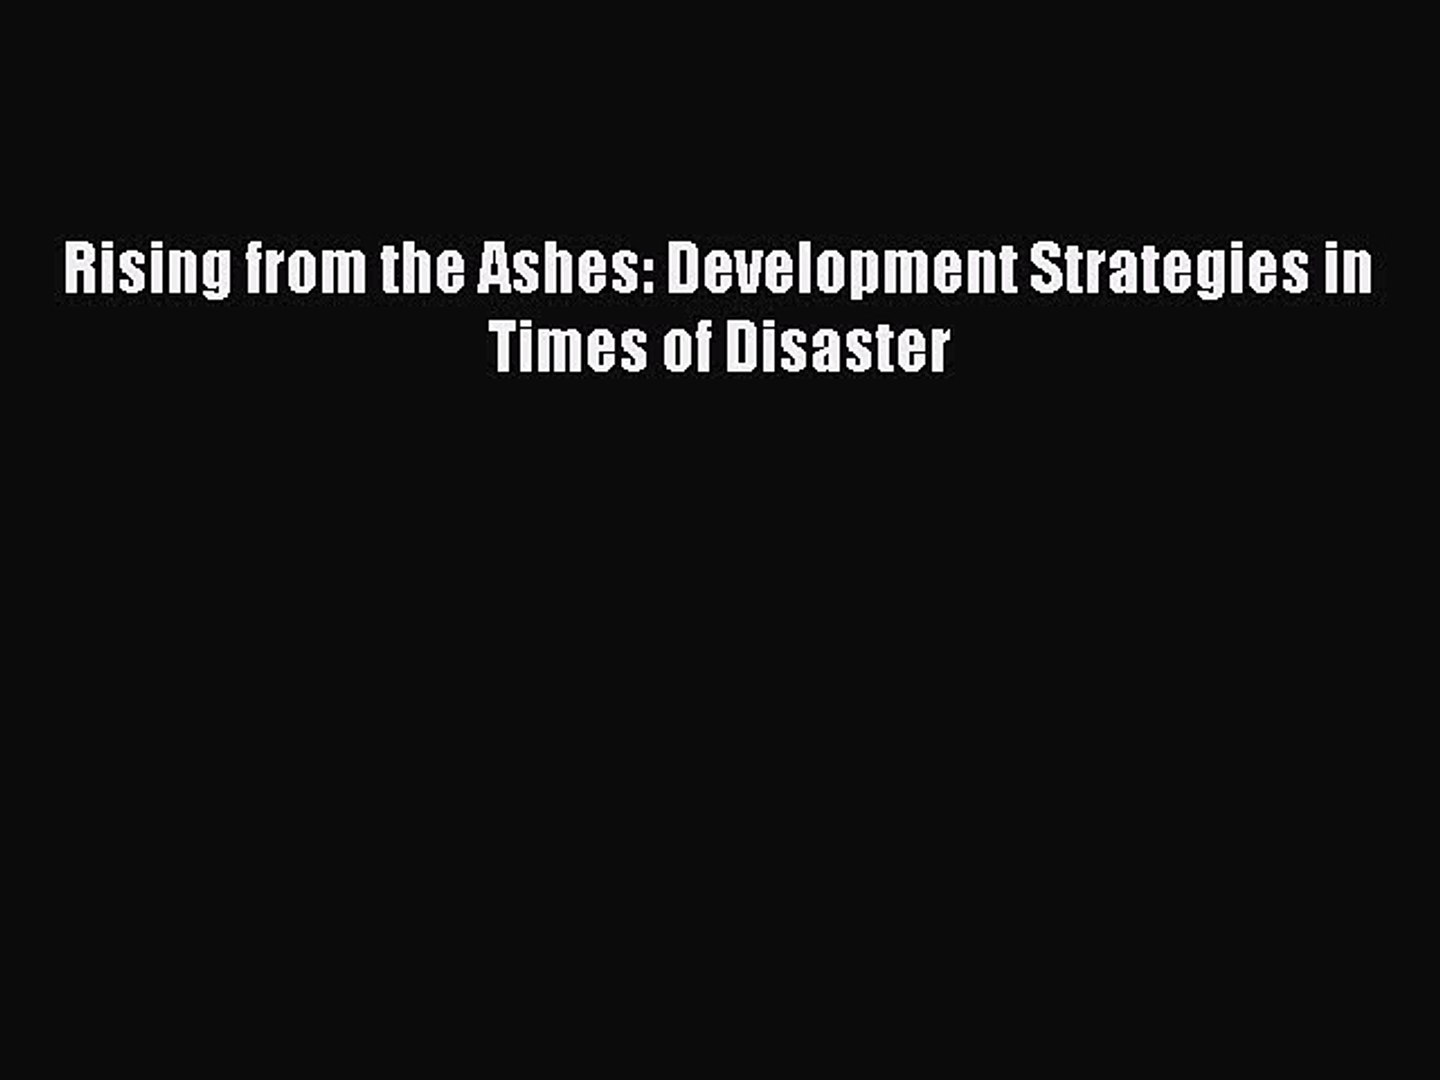 [PDF] Rising from the Ashes: Development Strategies in Times of Disaster [Read] Full Ebook